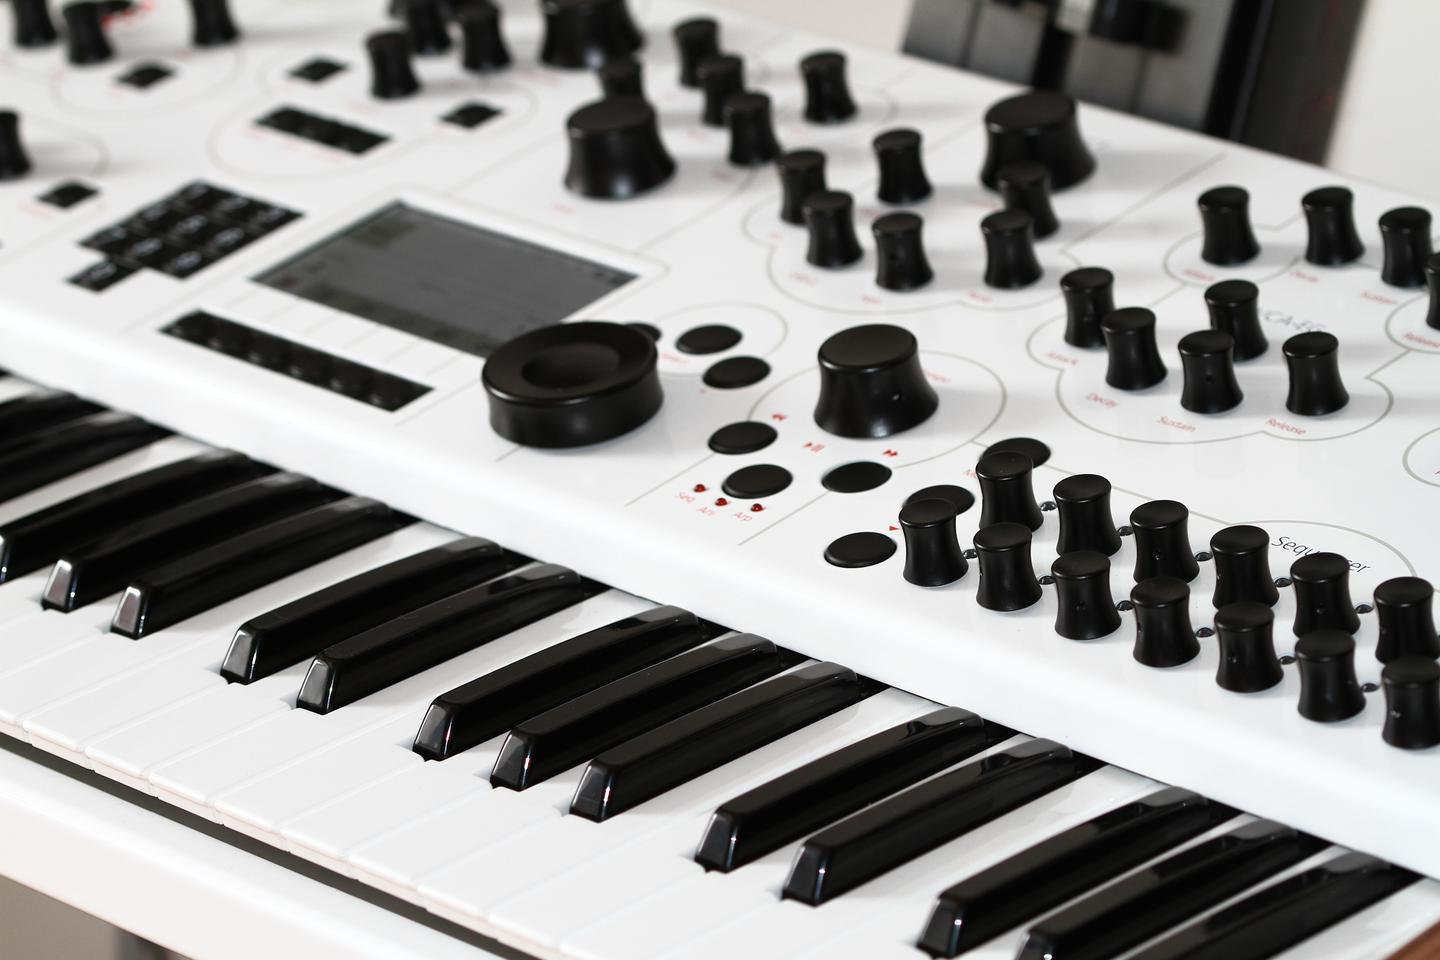 The Modulus.002 features a Fatar semi-weighted, five octave key mechanism with aftertouch (pressure sensitivity)